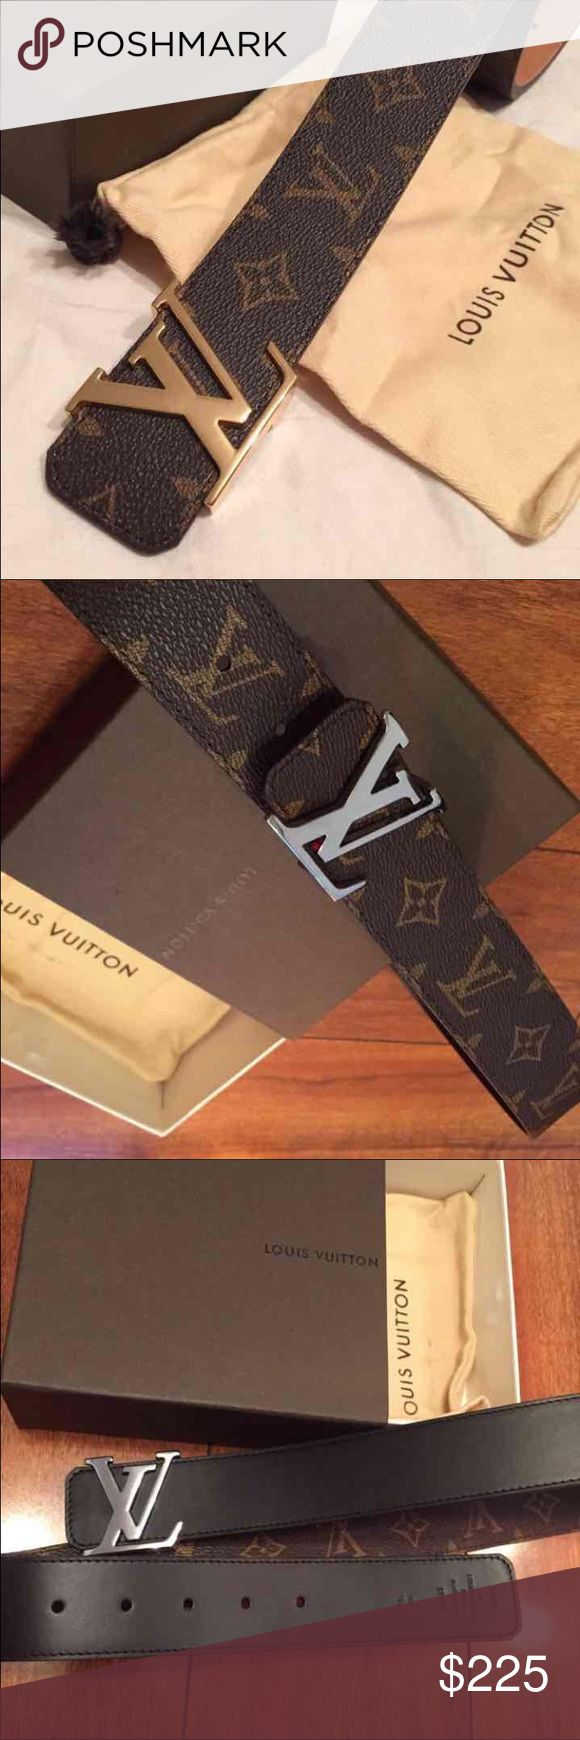 Authentic Brown Mono Reversible Louis Vuitton Belt Authentic New Reversible Brown and Black Louis Vuitton  Monogram Belt with Dark Chrome Silver Buckle.  LV Initiales 40MM  • Brand New & Authentic  •M9821 • Width 50 mm/1.6 inches Men Conversion sizes 90/36 is 30-32 waist  95/38 is 32-34 waist  100/40 is 34-36 waist  105/42 is 36-38 waist  110/44 is 38-40 waist  115/46 is 40/42 waist Belt will come w box and dustbag. Shipping: , We ship items within 24hrs of purchase, and you will receive it…